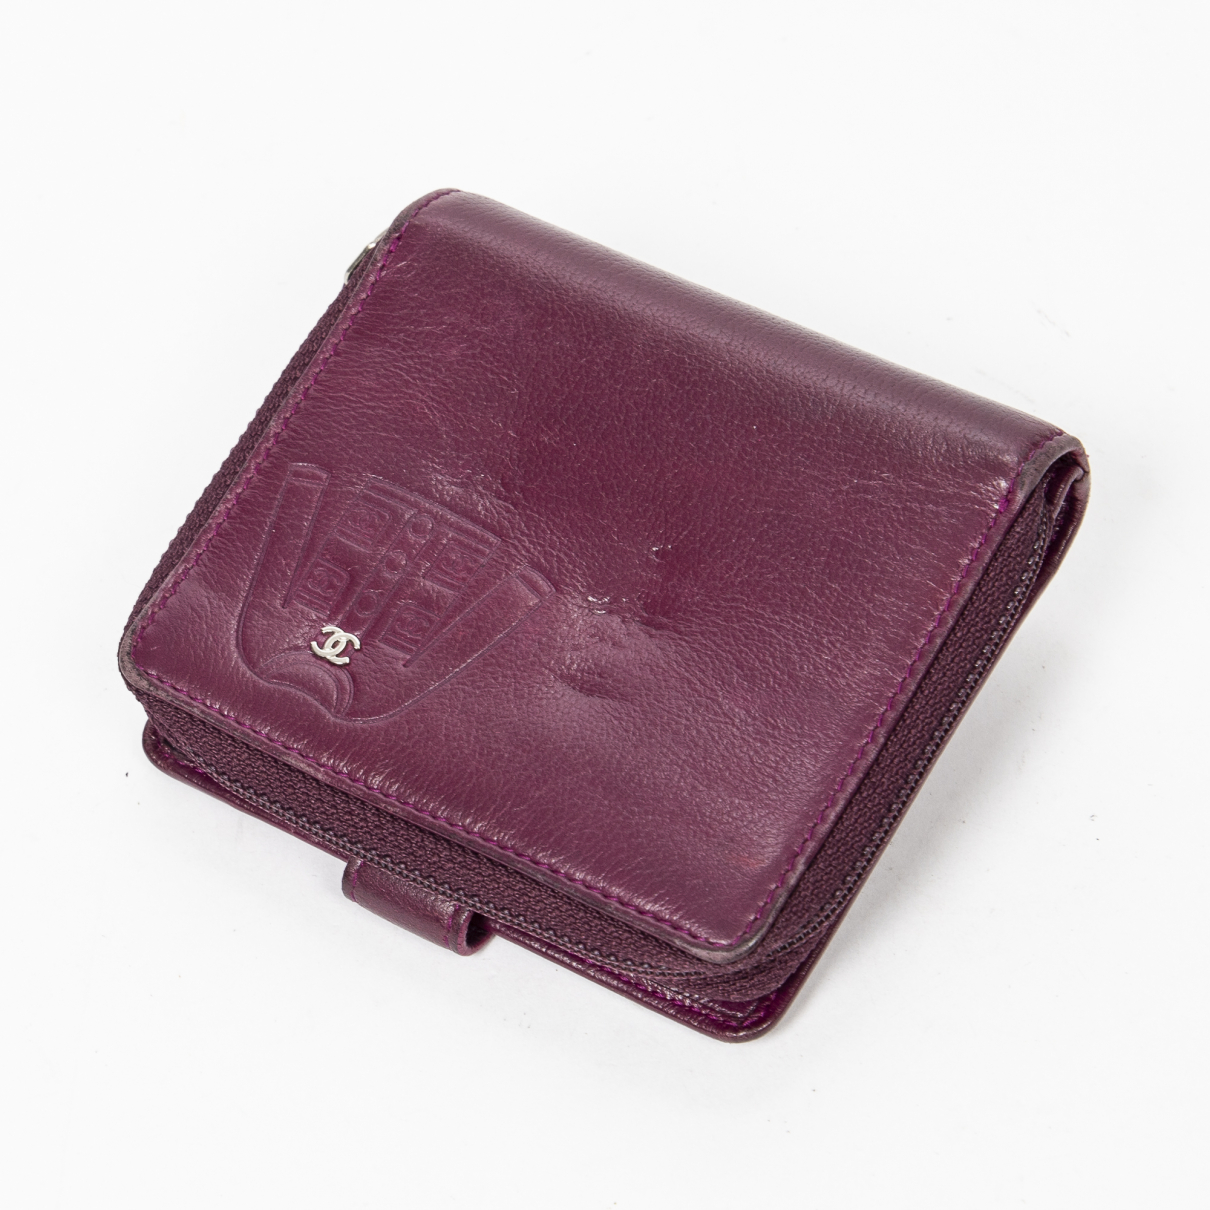 Chanel \N Purple Leather wallet for Women \N